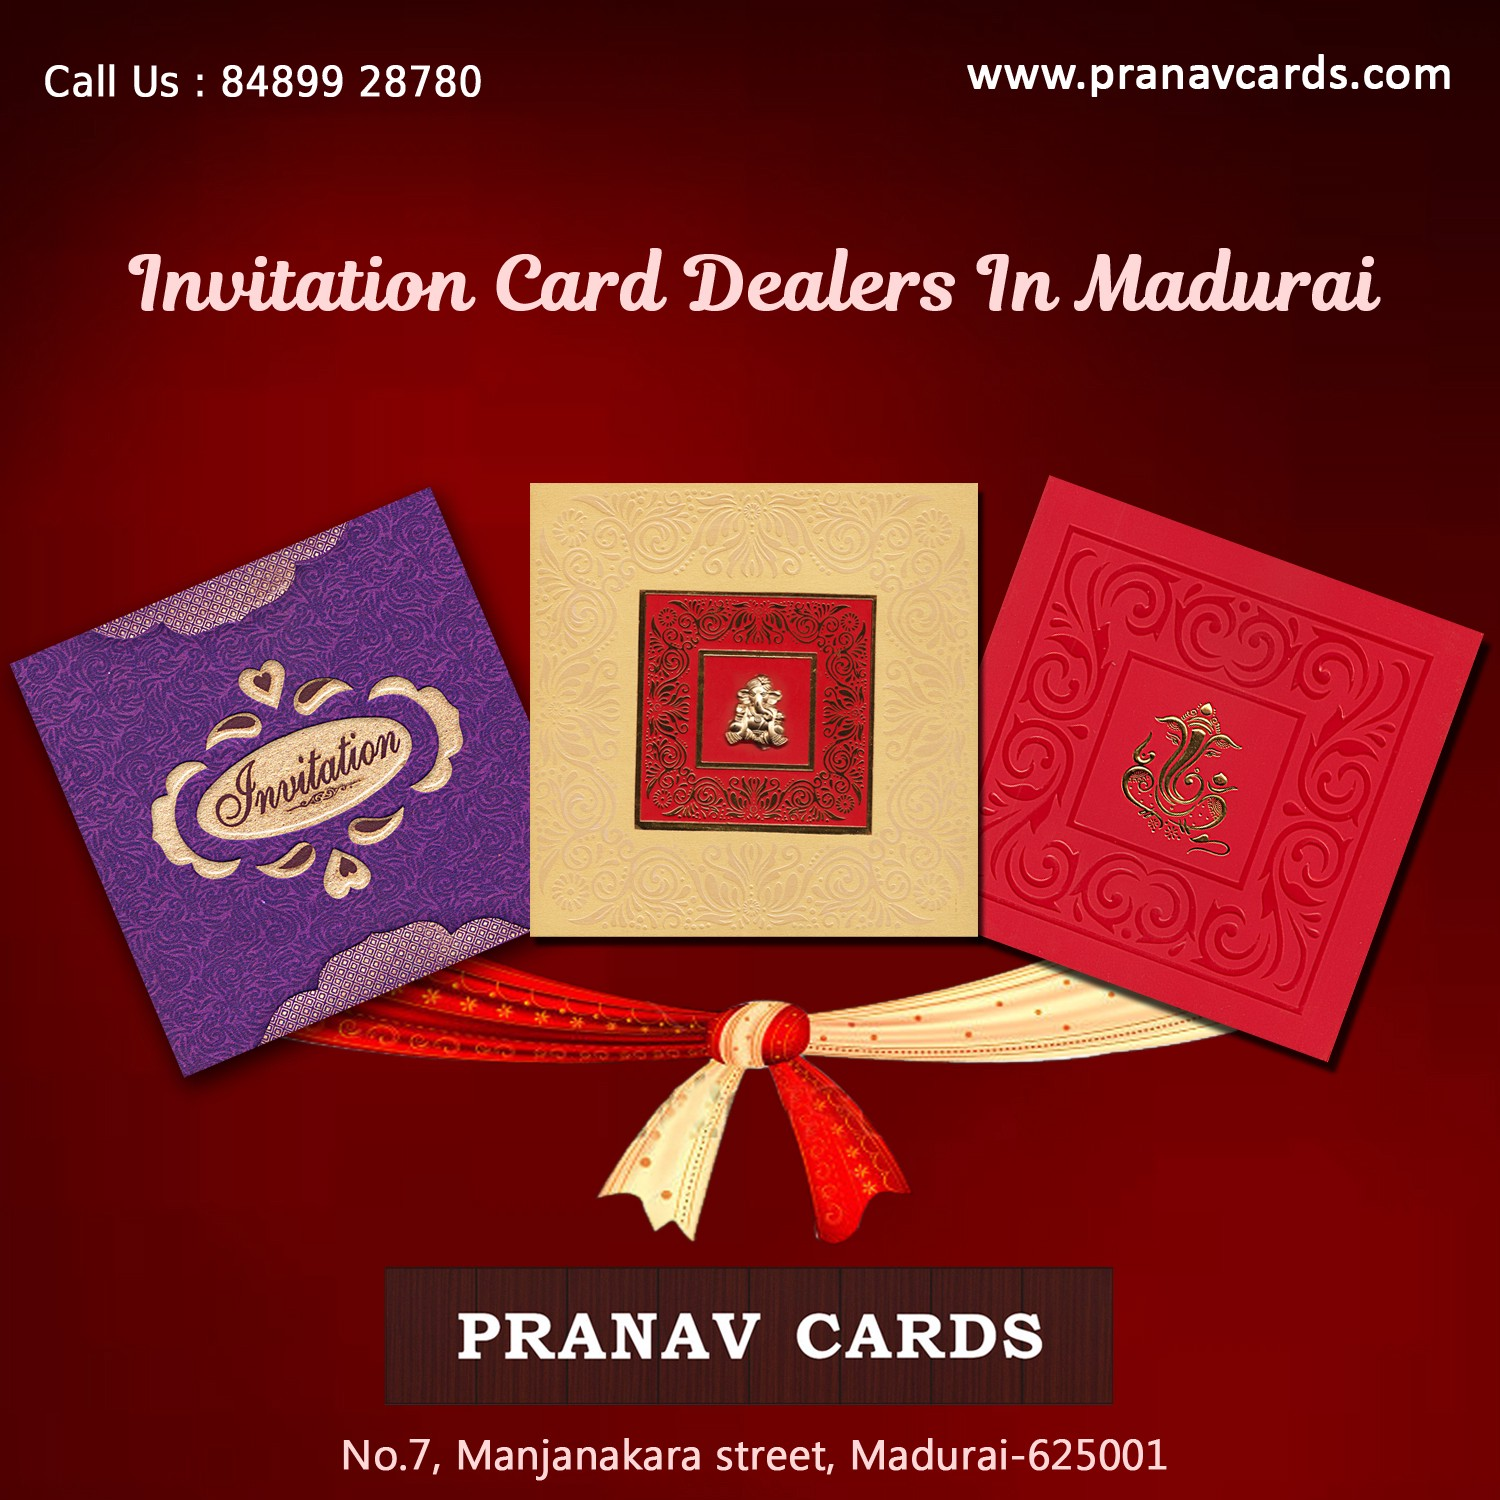 Purchase Your Invitation Cards @ www.pranavcards.com that Can Save ...